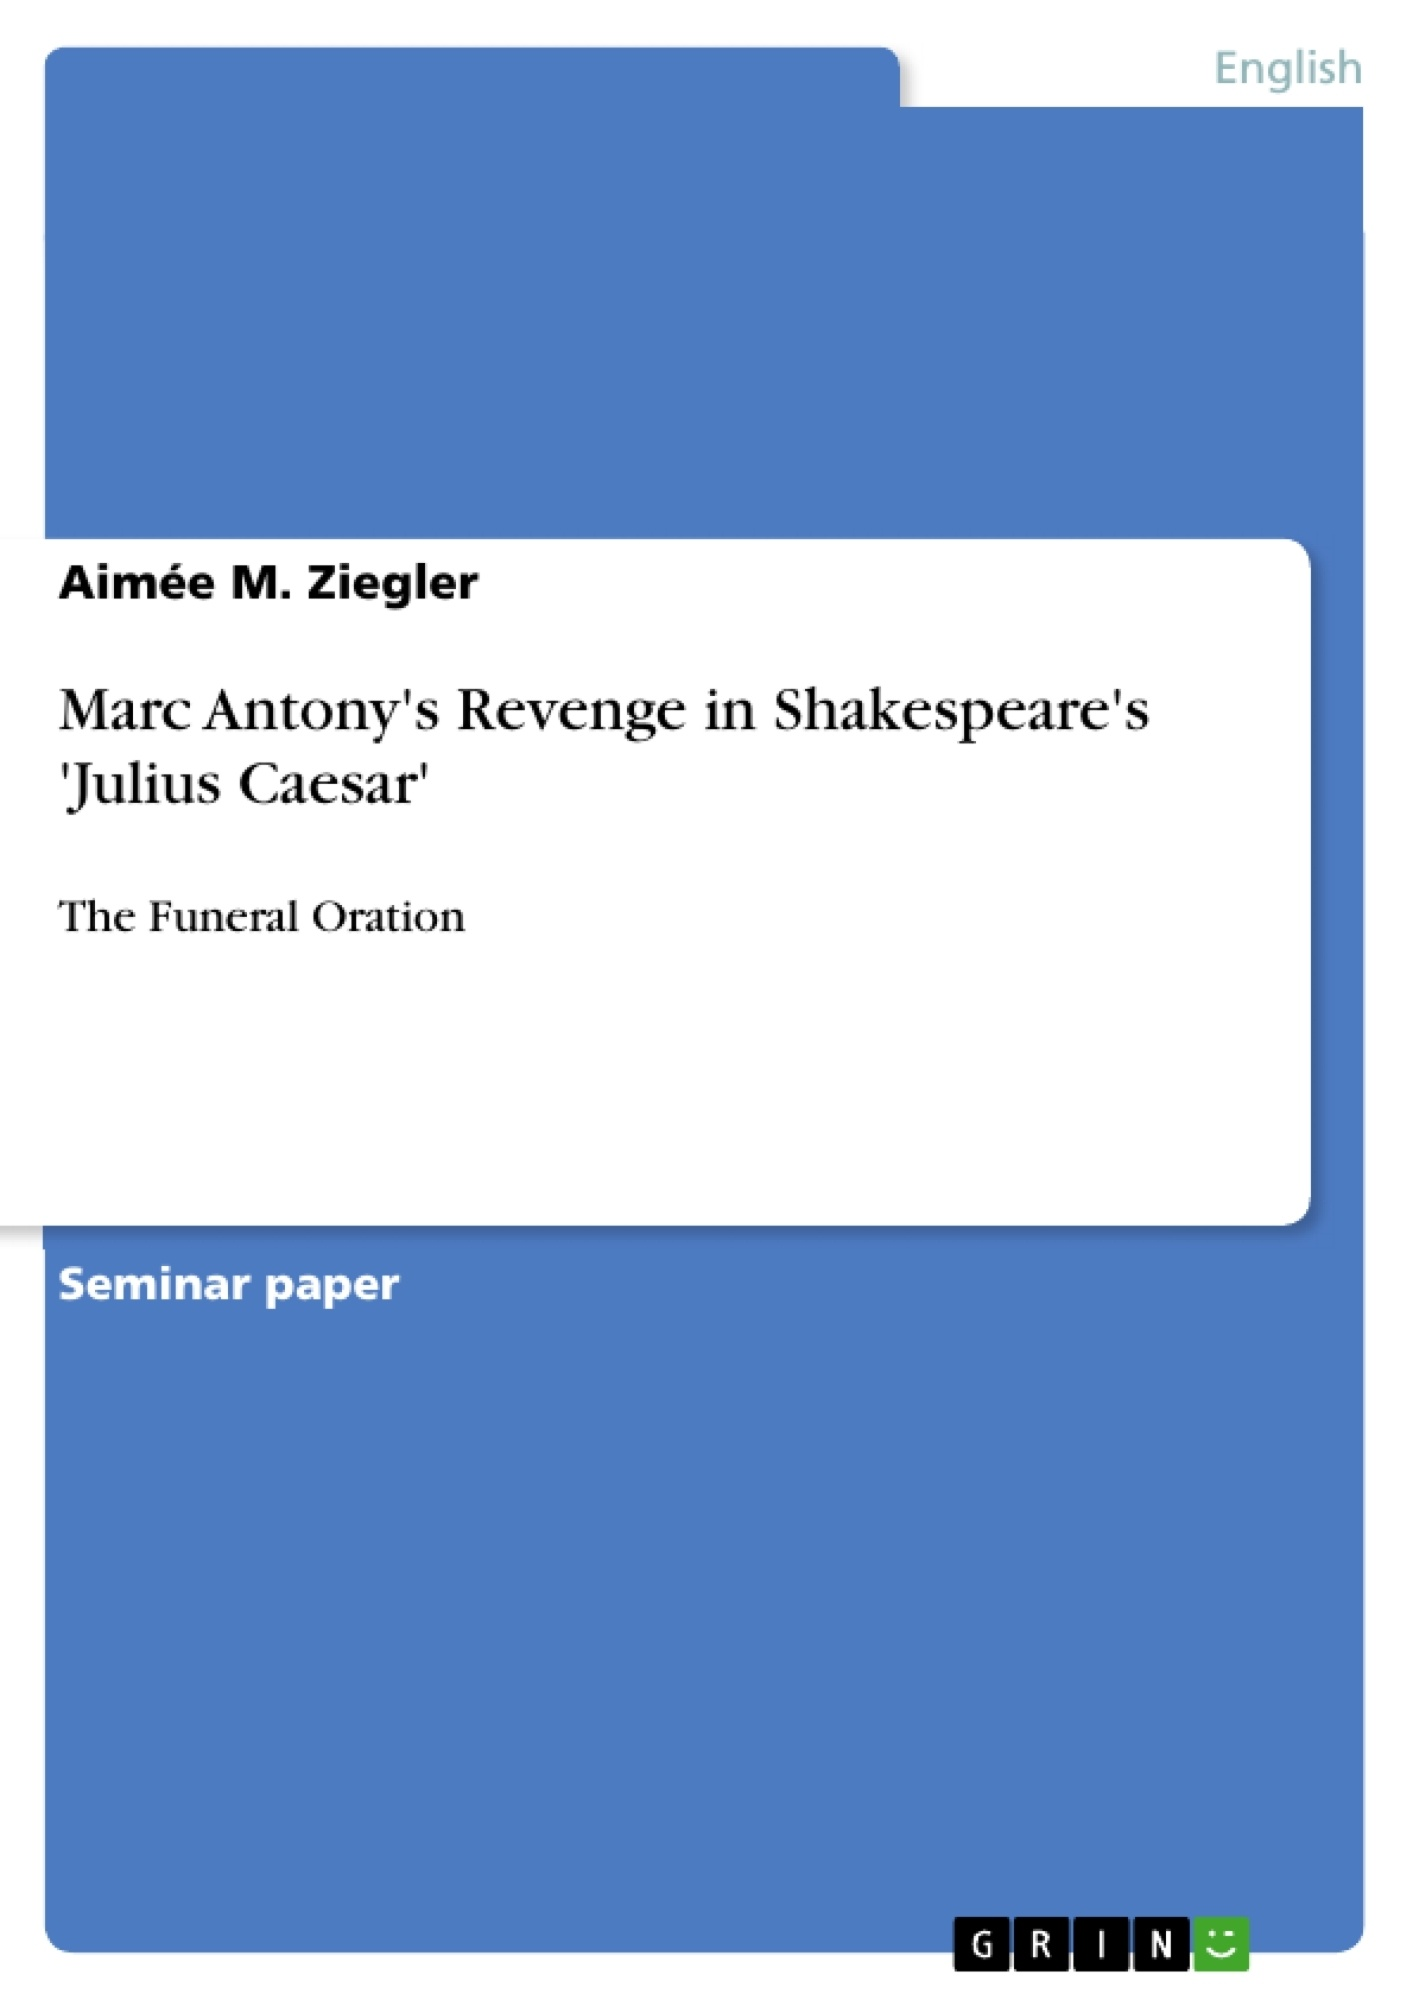 essay on julius caesar marc antony s revenge in shakespeare s  marc antony s revenge in shakespeare s julius caesar publish marc antony s revenge in shakespeare